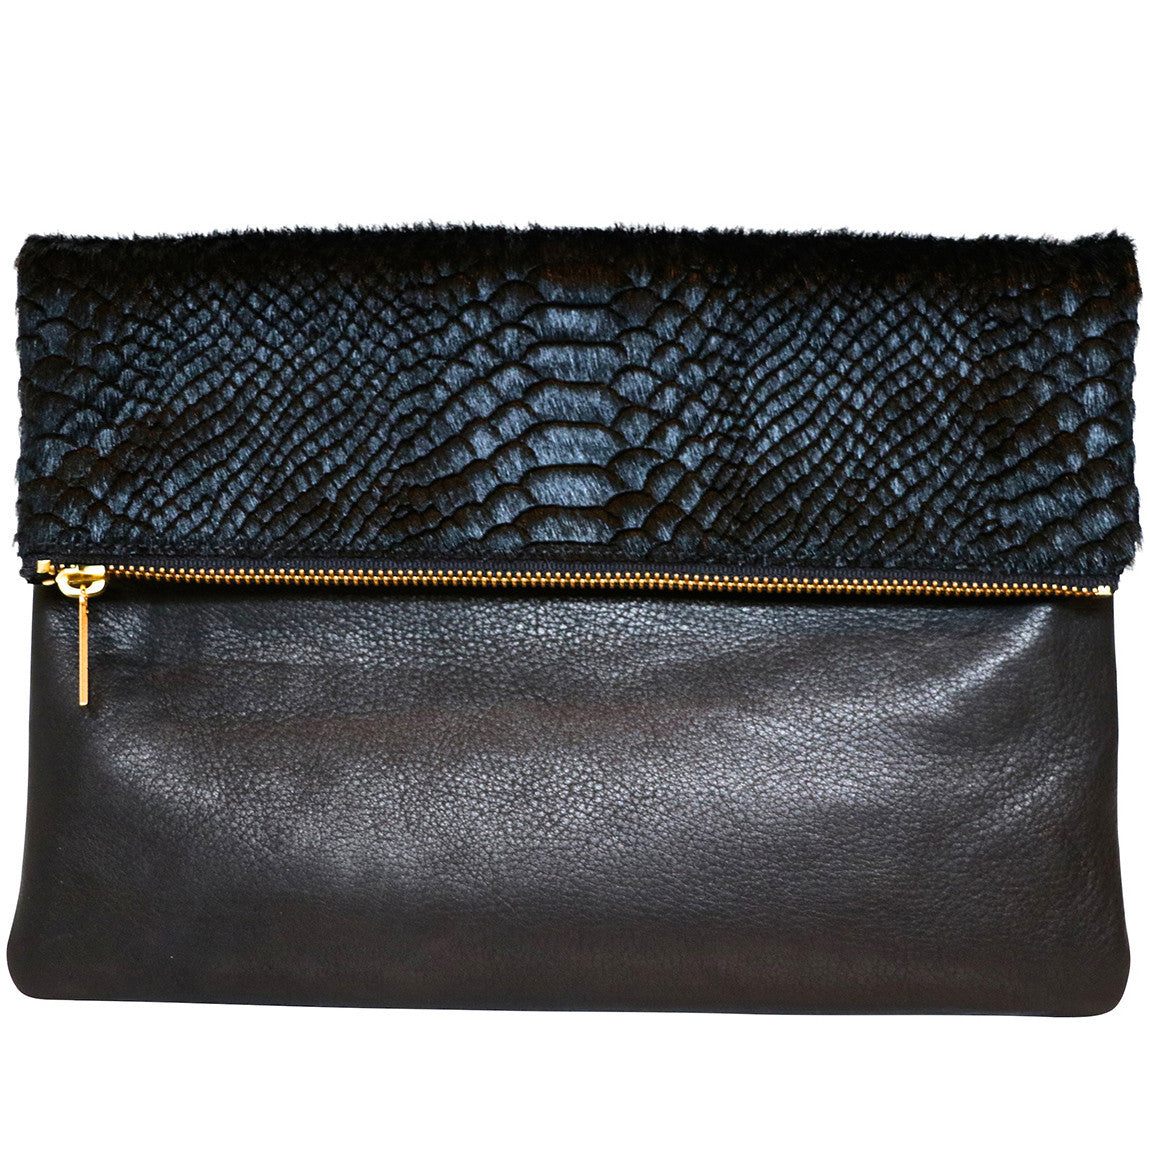 Little Black Bag, Black Clutch, Black Handbag, Leather Clutch, Gifts for her, Christmas Wishlist, Crossbody Bag, Black Python Leather, Evening Bag, Southern Designers, Southern Handbag Designer, Cowhide Clutch, Molly Jane Designs, Southern Living Handbags, Handbag Accessories